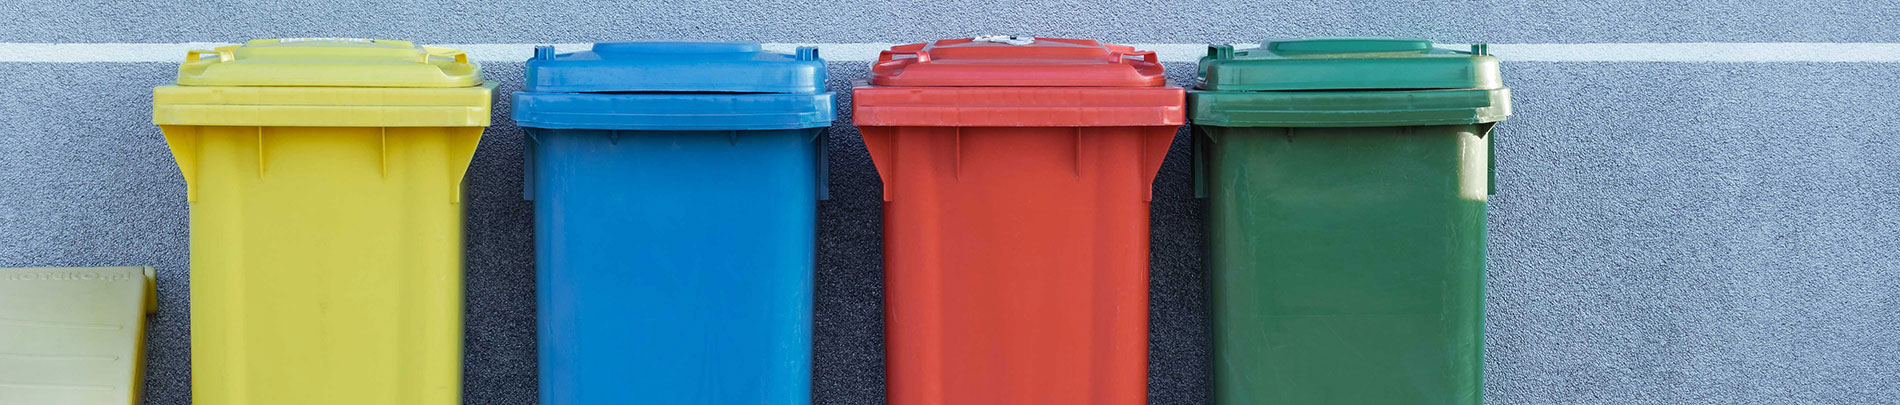 A series of colourful garbage and recycling bins lined up against a wall.